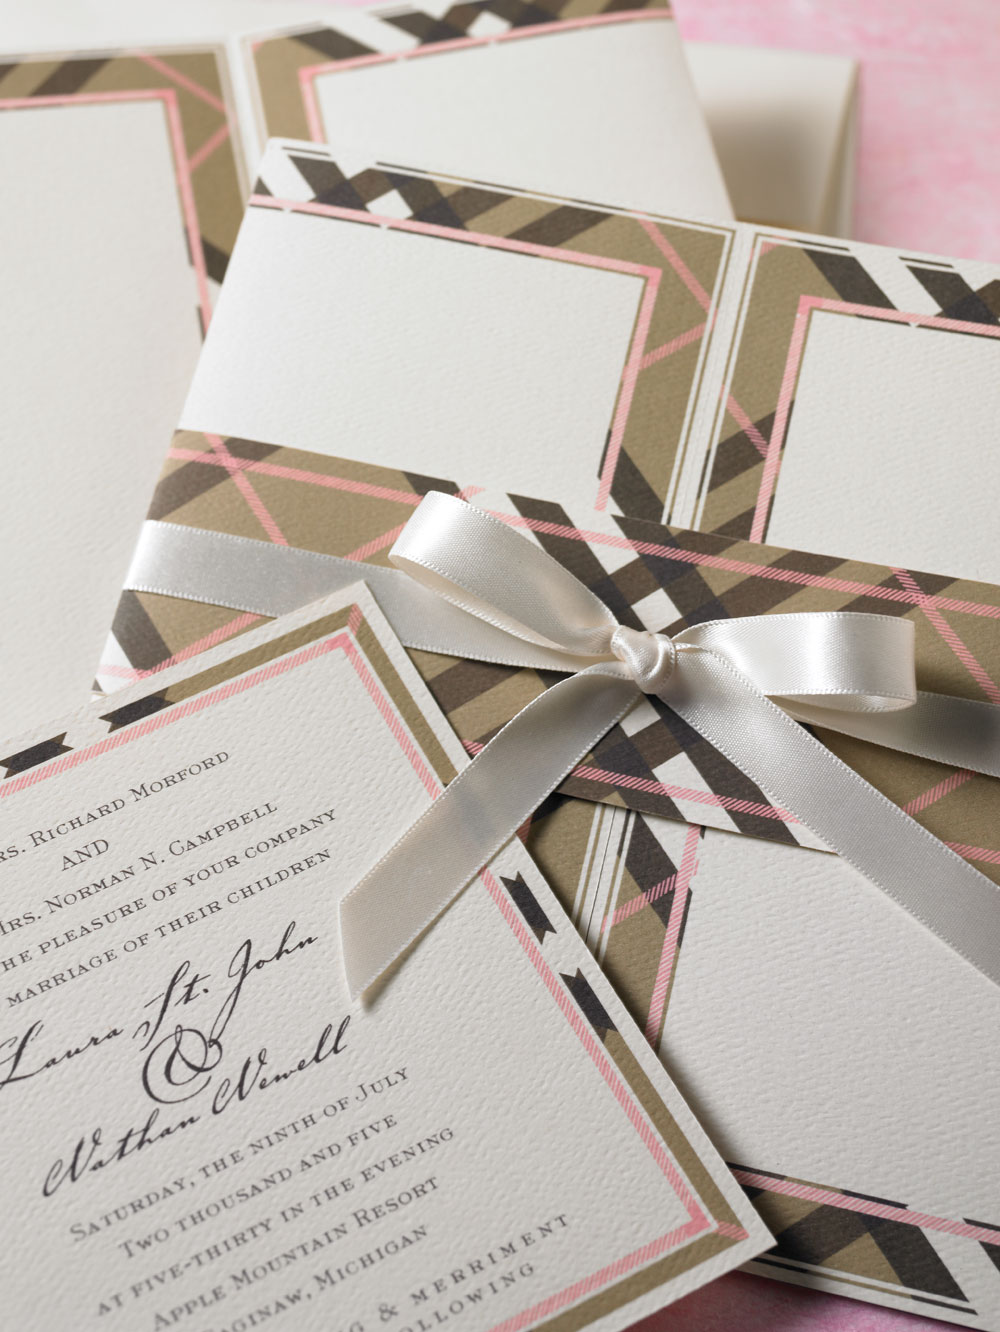 Chocolate brown and soft pink nova plaid wedding invitation, jacket and bellyband. Flat printed on soft white felt weave paper.